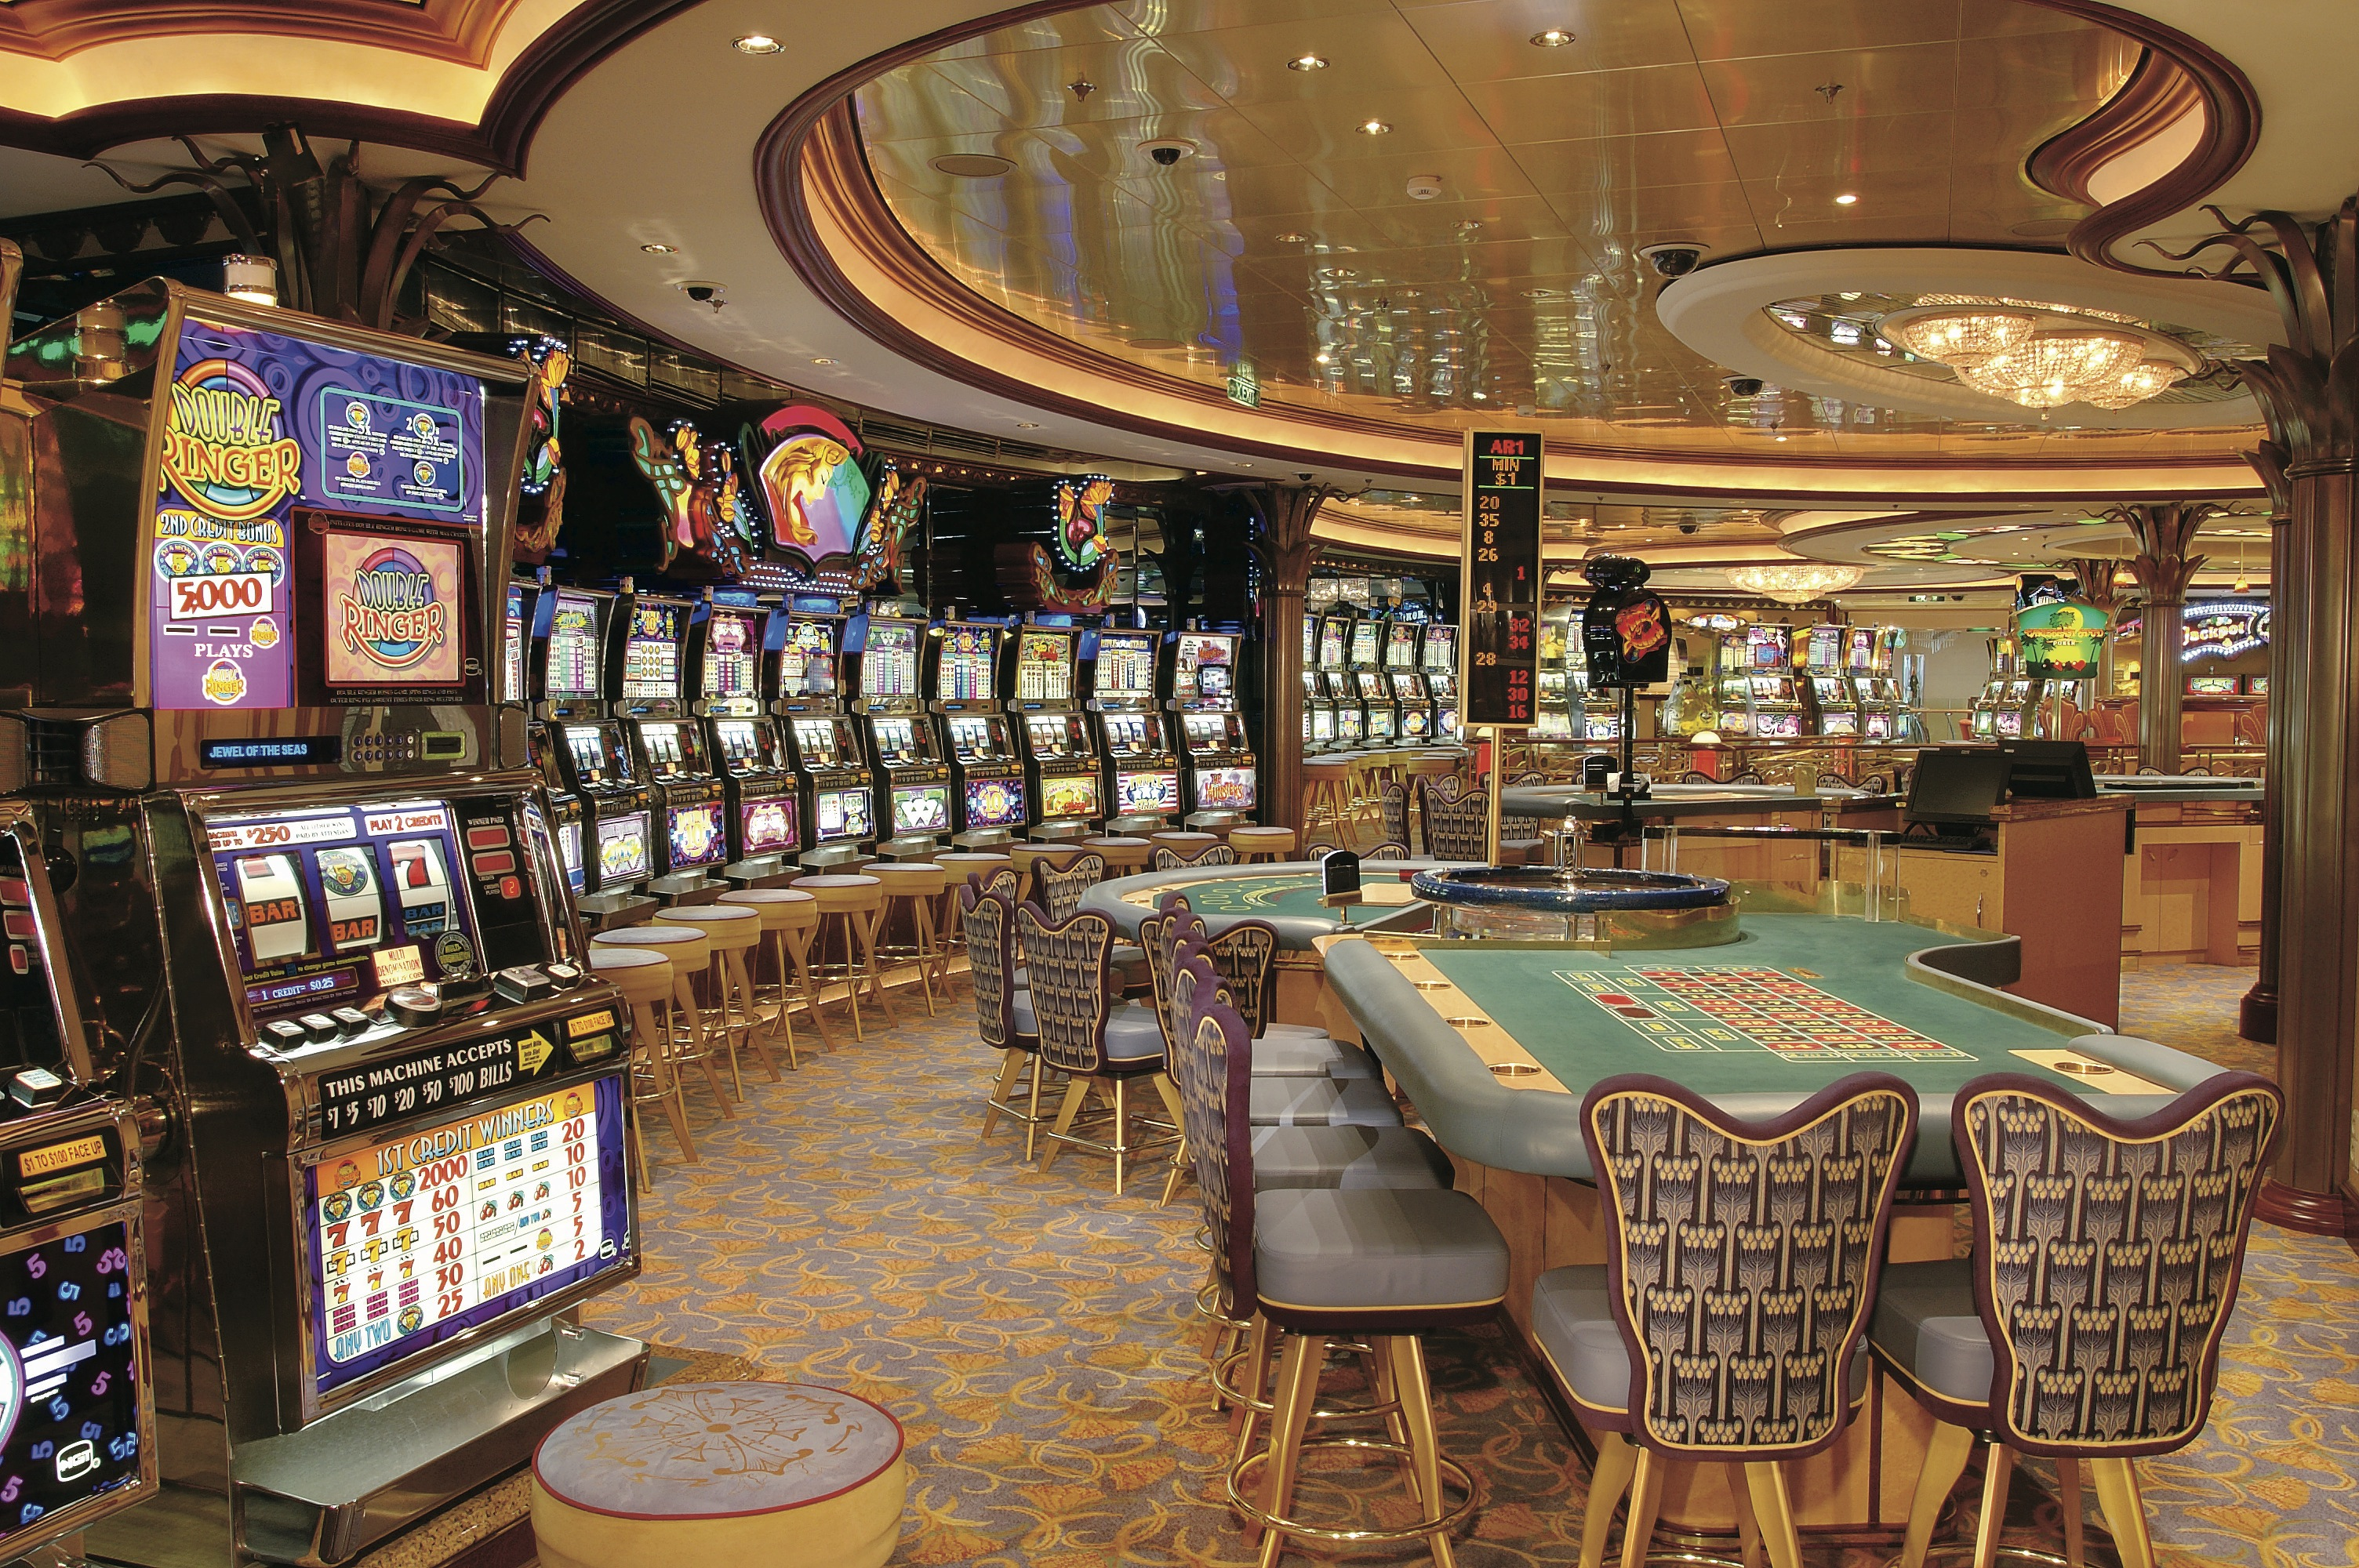 Royal Caribbean International Jewel of the Seas Interior Casino Royale.jpeg